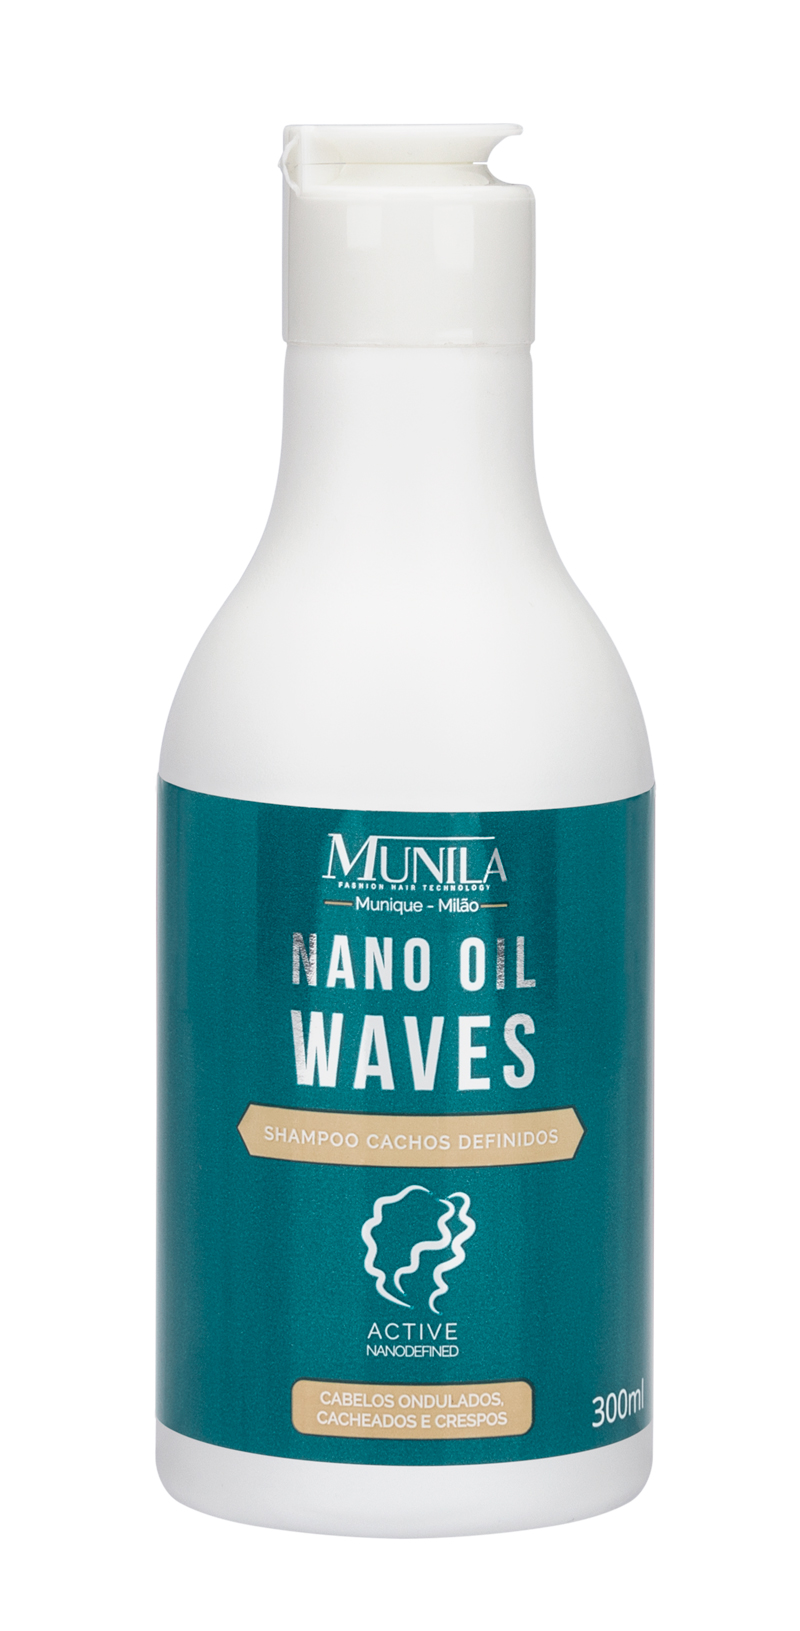 Nano Oil Waves